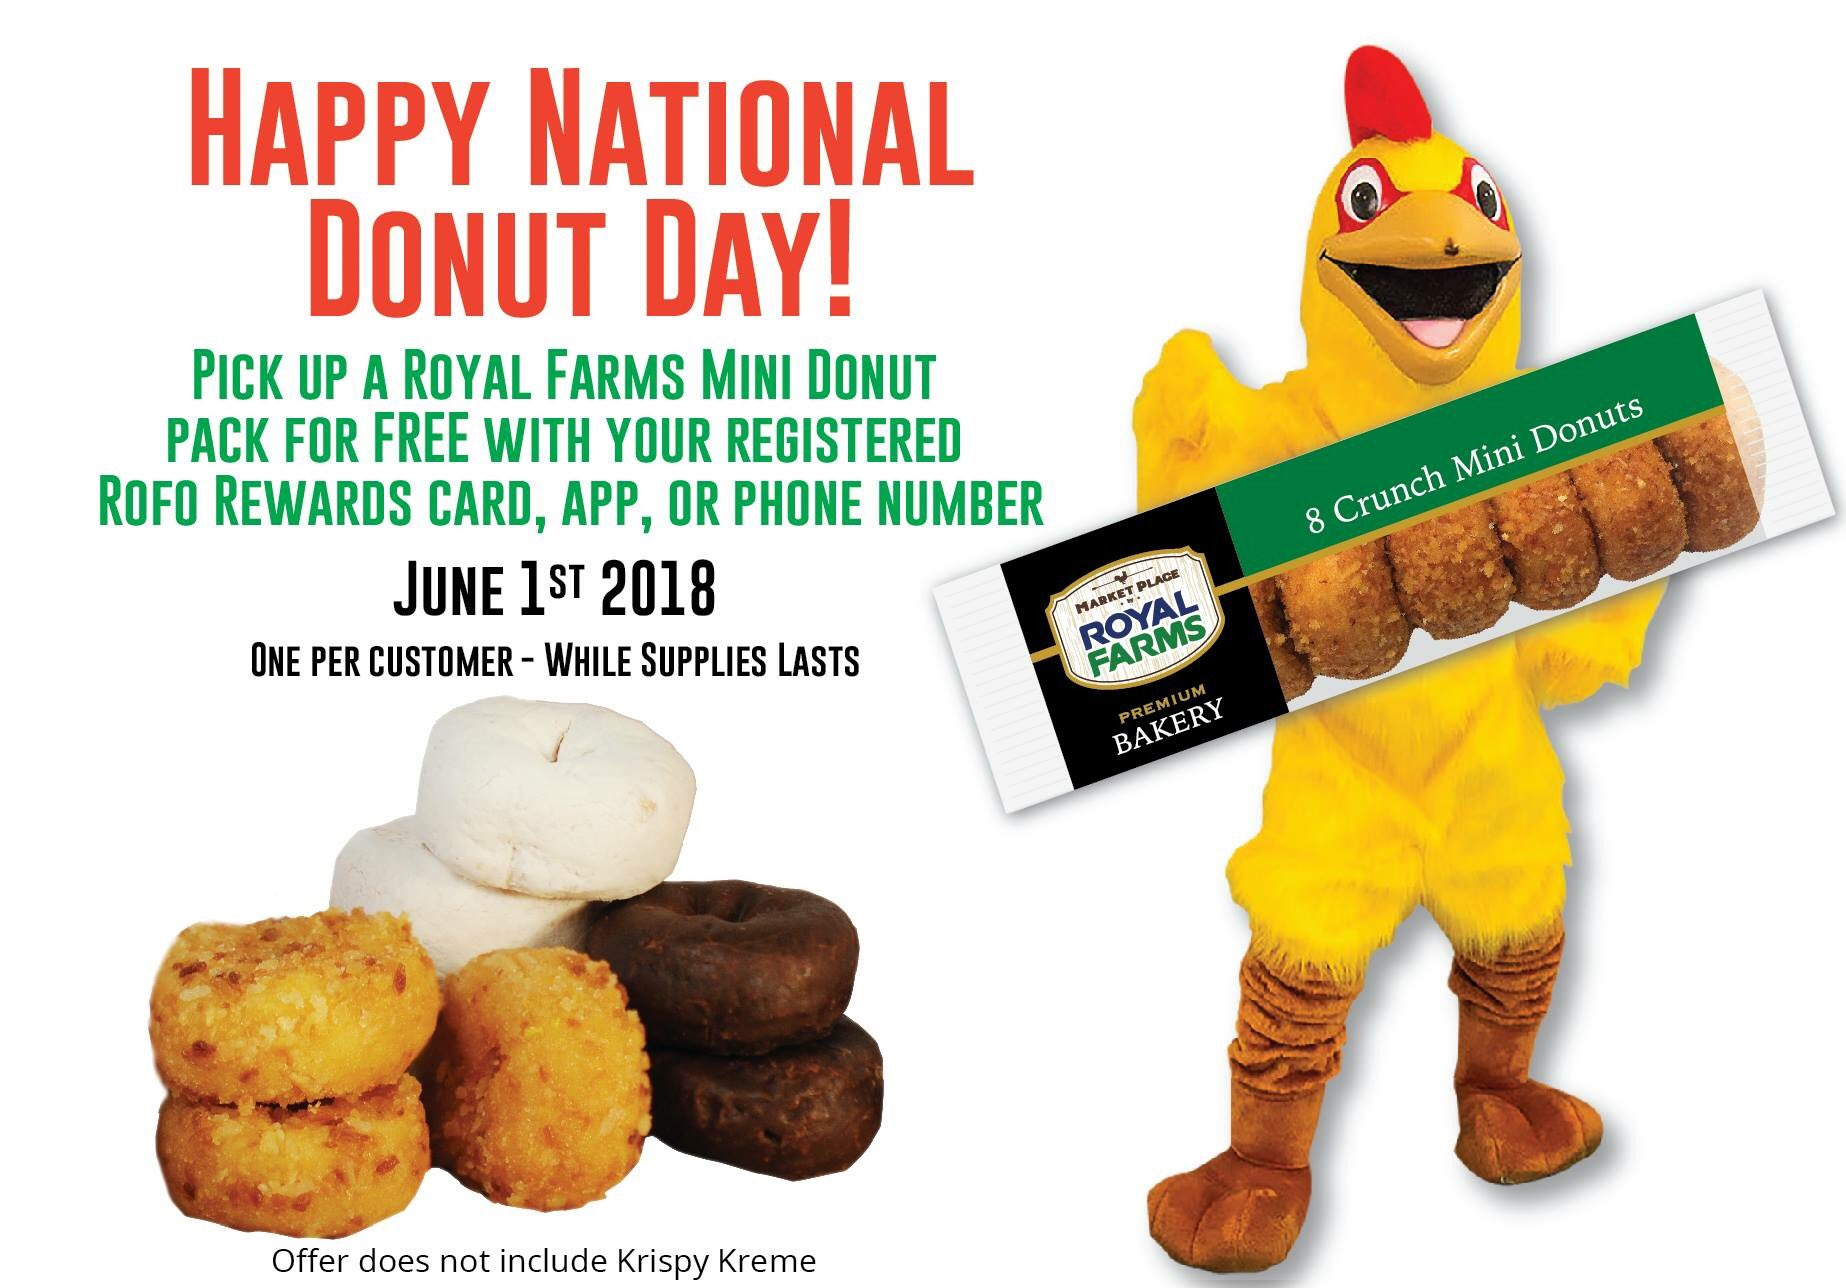 Royal Farms On Twitter Details Below For A Free Pack Of Mini Donuts Today